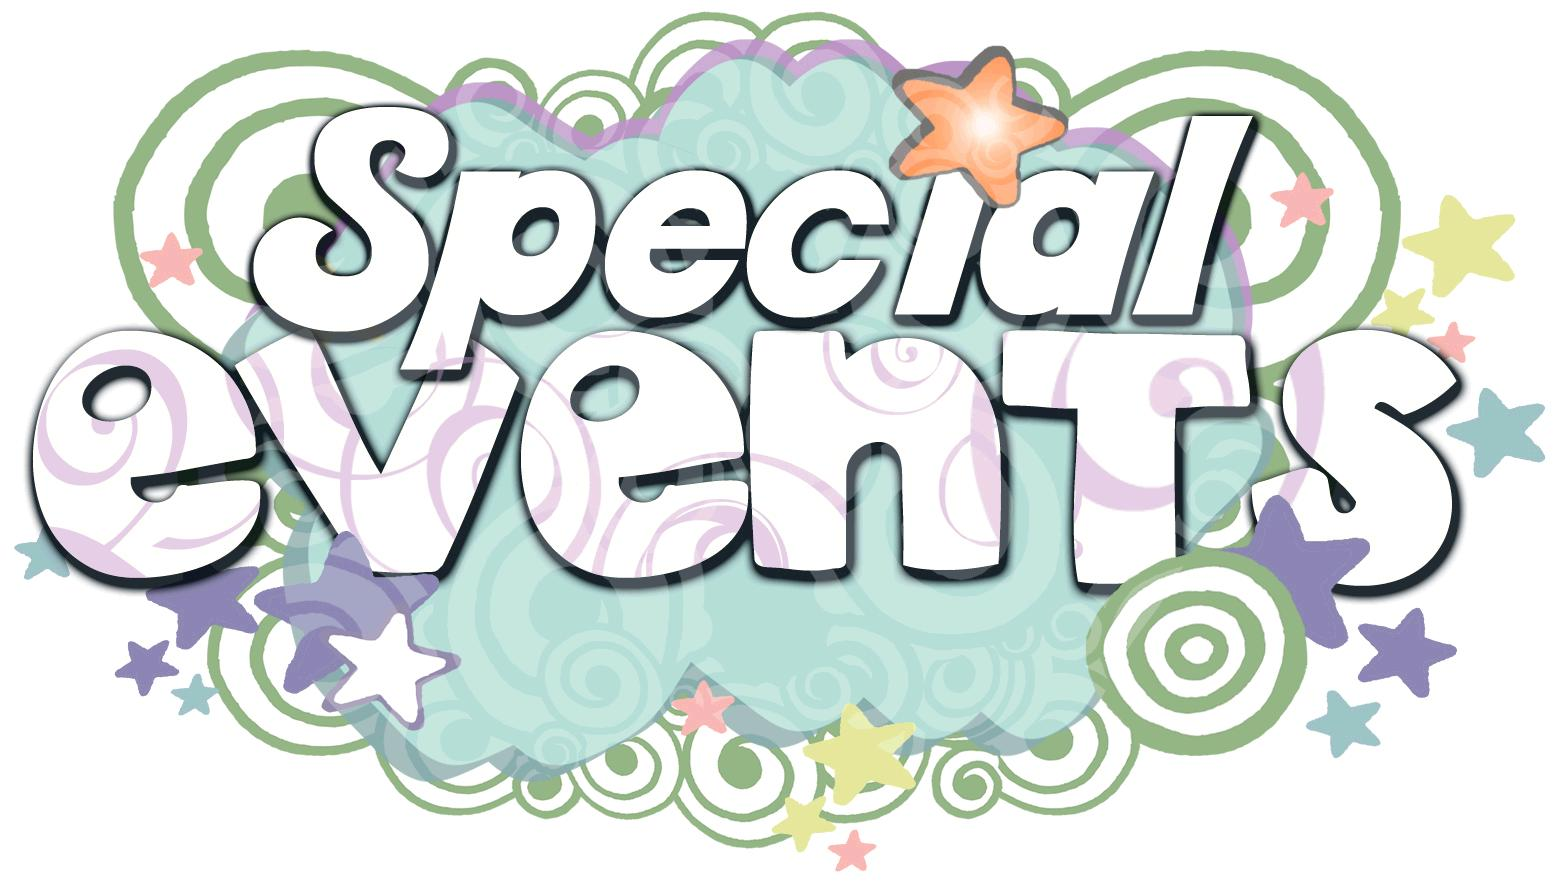 Free event clipart vector royalty free download Free Events Cliparts, Download Free Clip Art, Free Clip Art on ... vector royalty free download